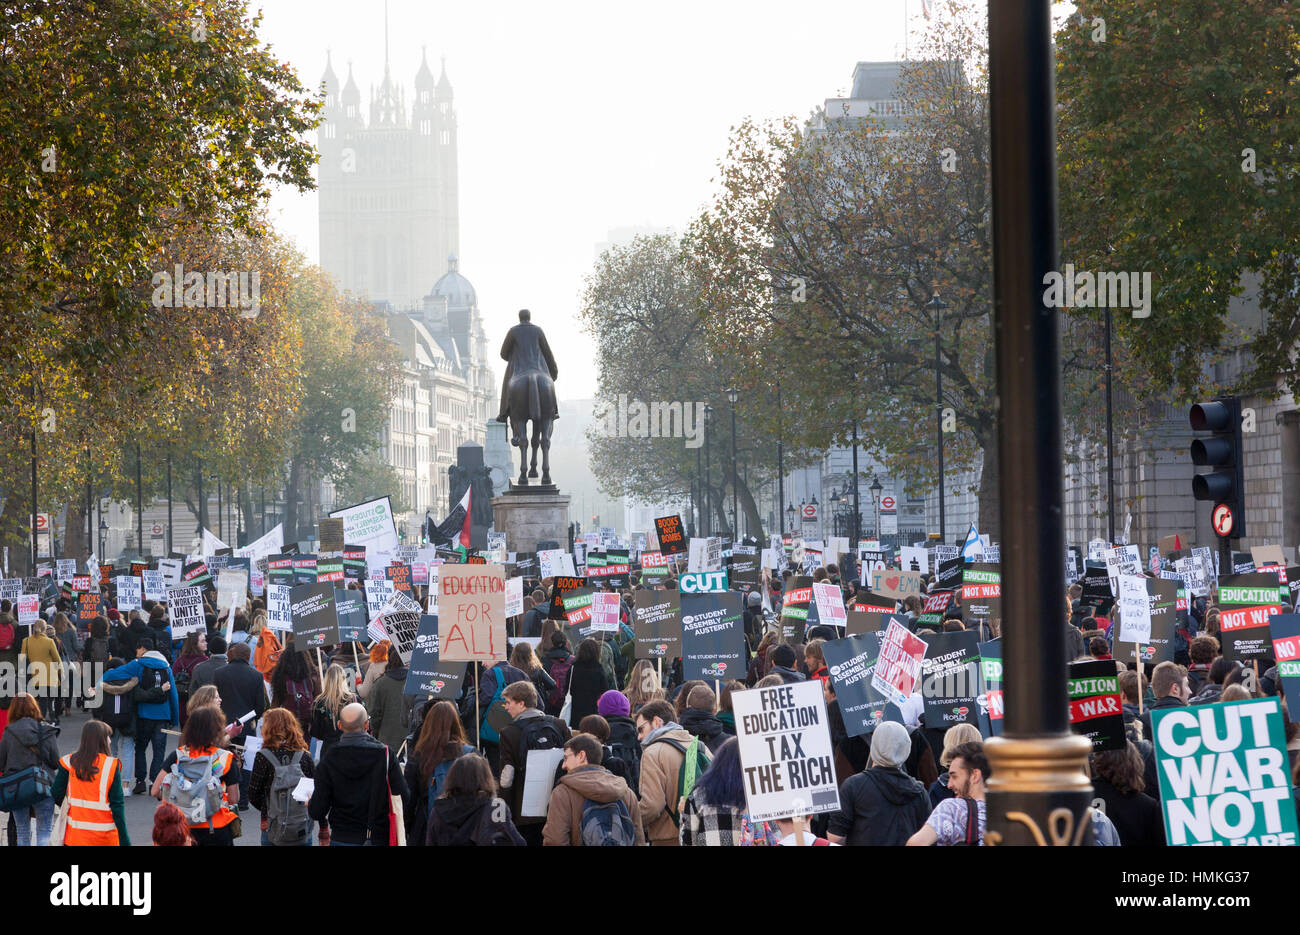 Student protest against education fees. They marched through London from Mallet Street through Whitehall to Parliiament - Stock Image